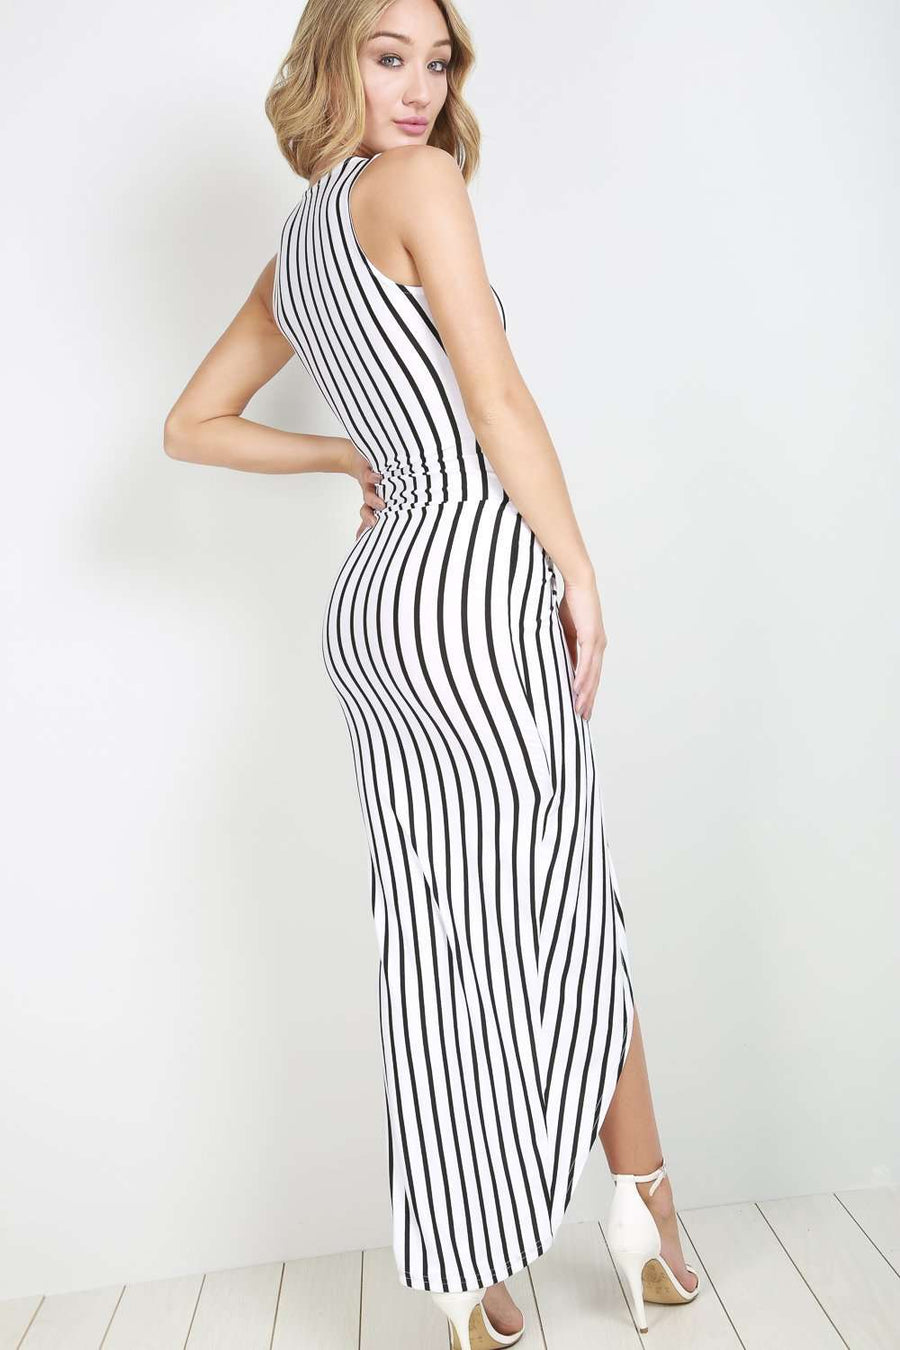 Sleeveless Monochrome Striped Twisted Maxi Dress - bejealous-com